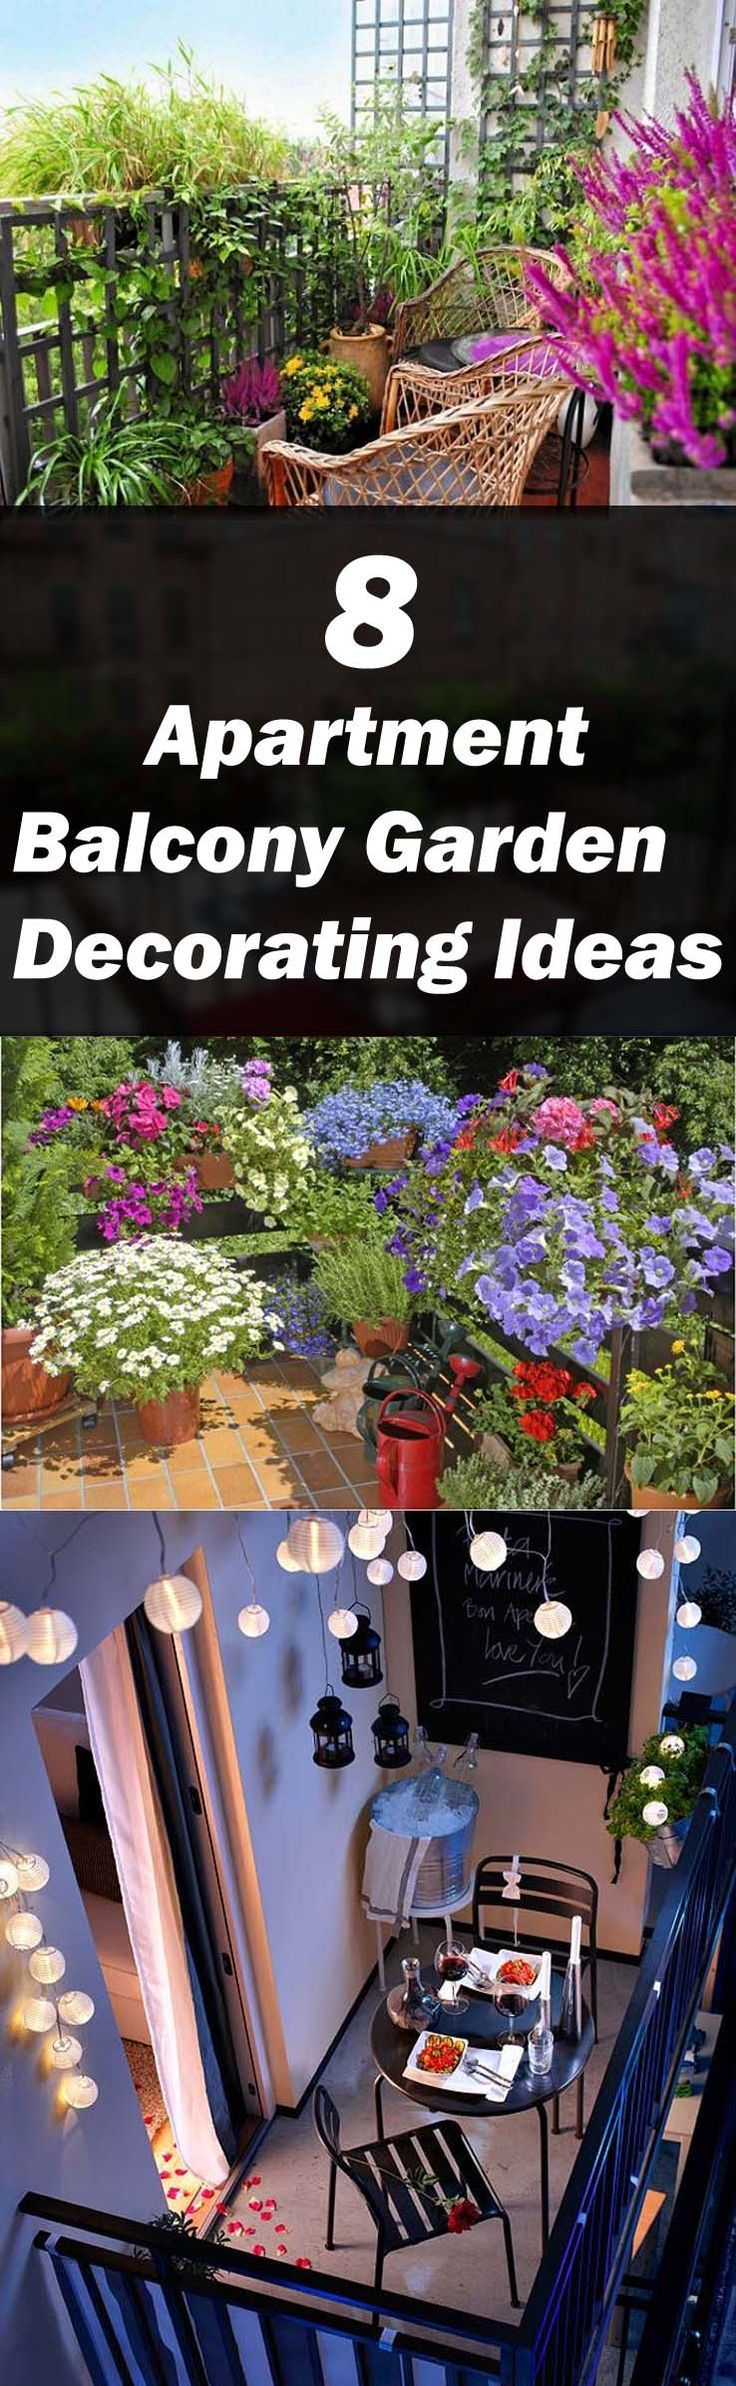 17 best ideas about apartment balcony decorating on for Balcony ideas